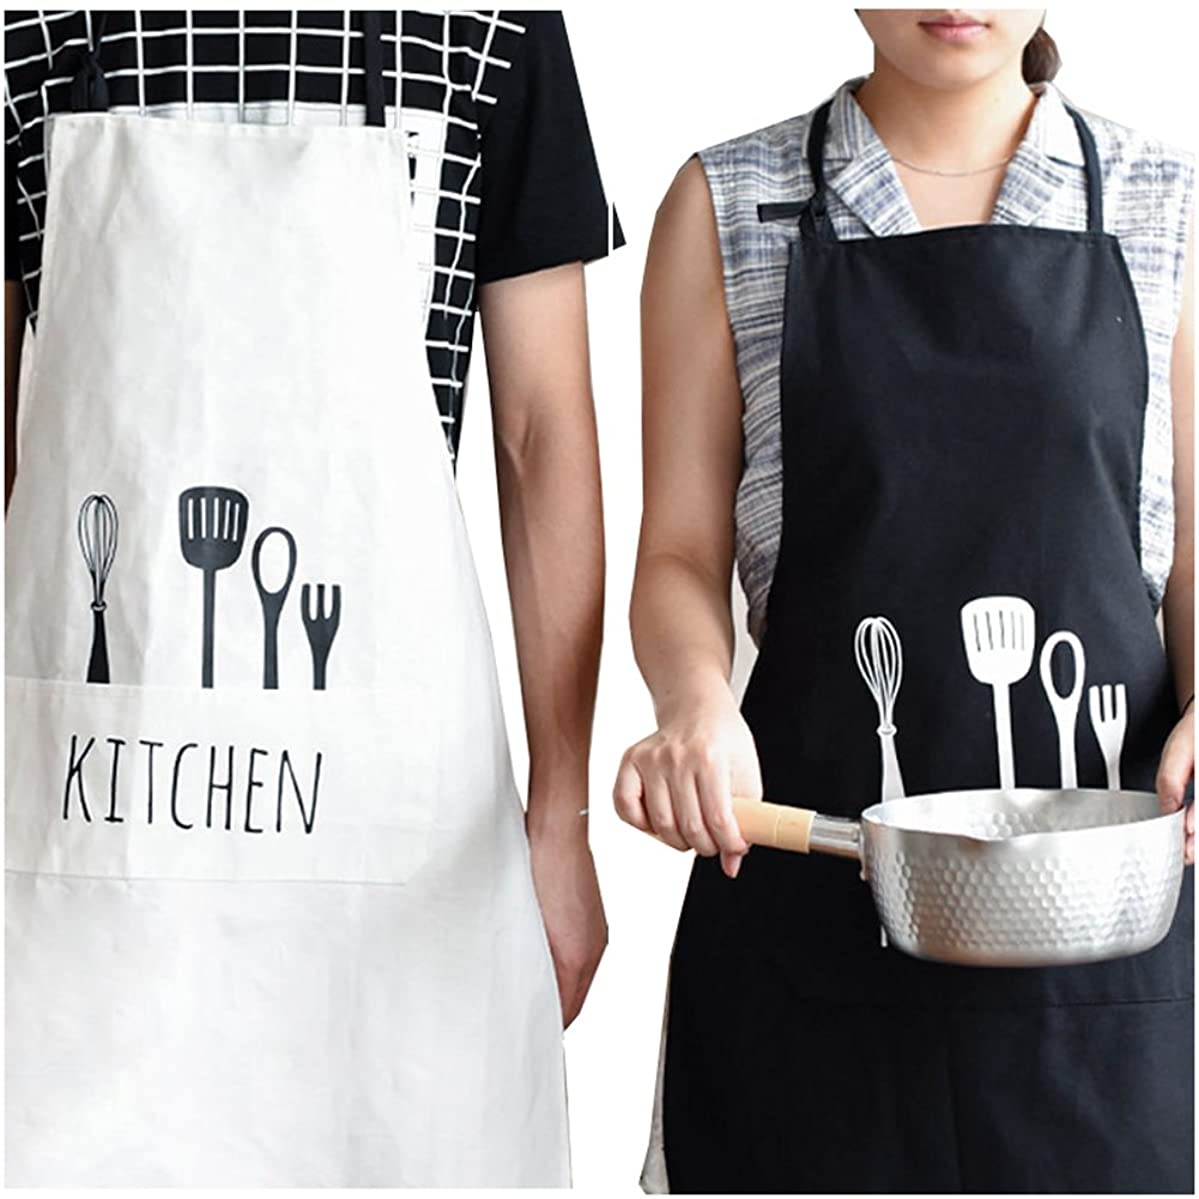 Wedding Gift 2016 - Kitchen Aprons With Pocket, His and Hers Couples Present for Bridal Shower, Newlywed, Engagement